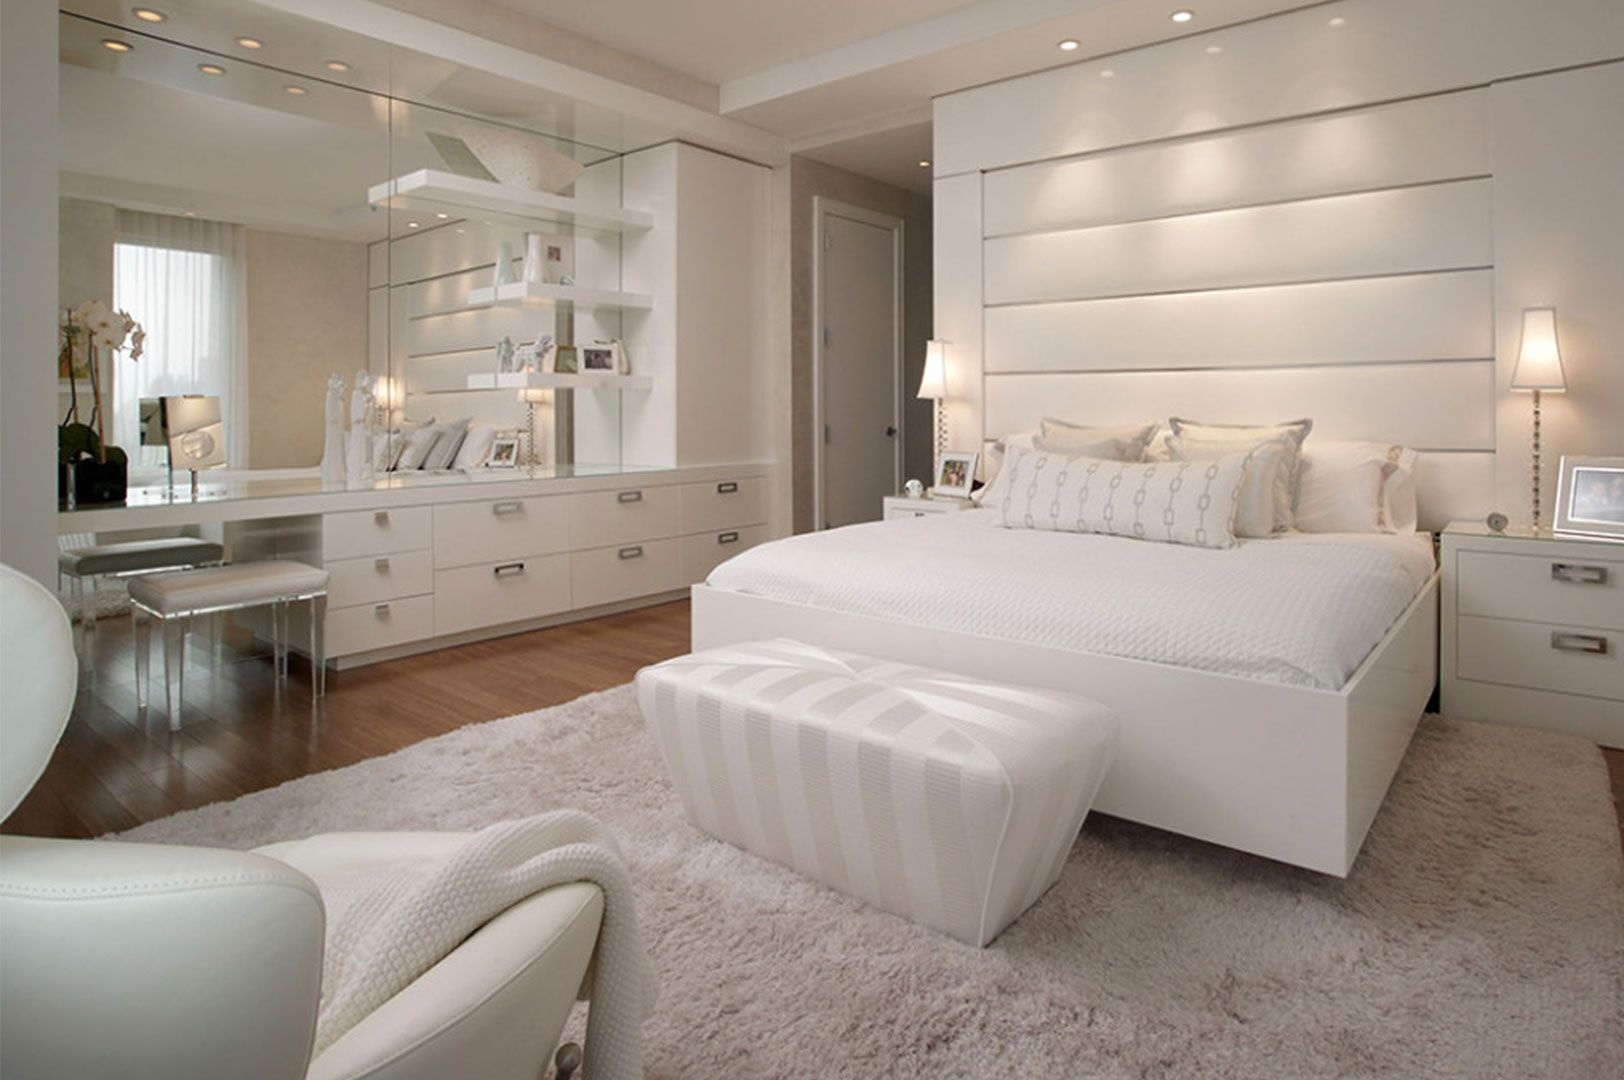 High Quality 1000 Images About Bedroom On Pinterest Study Tables Drum Table 1000 Images  About Bedroom On Pinterest